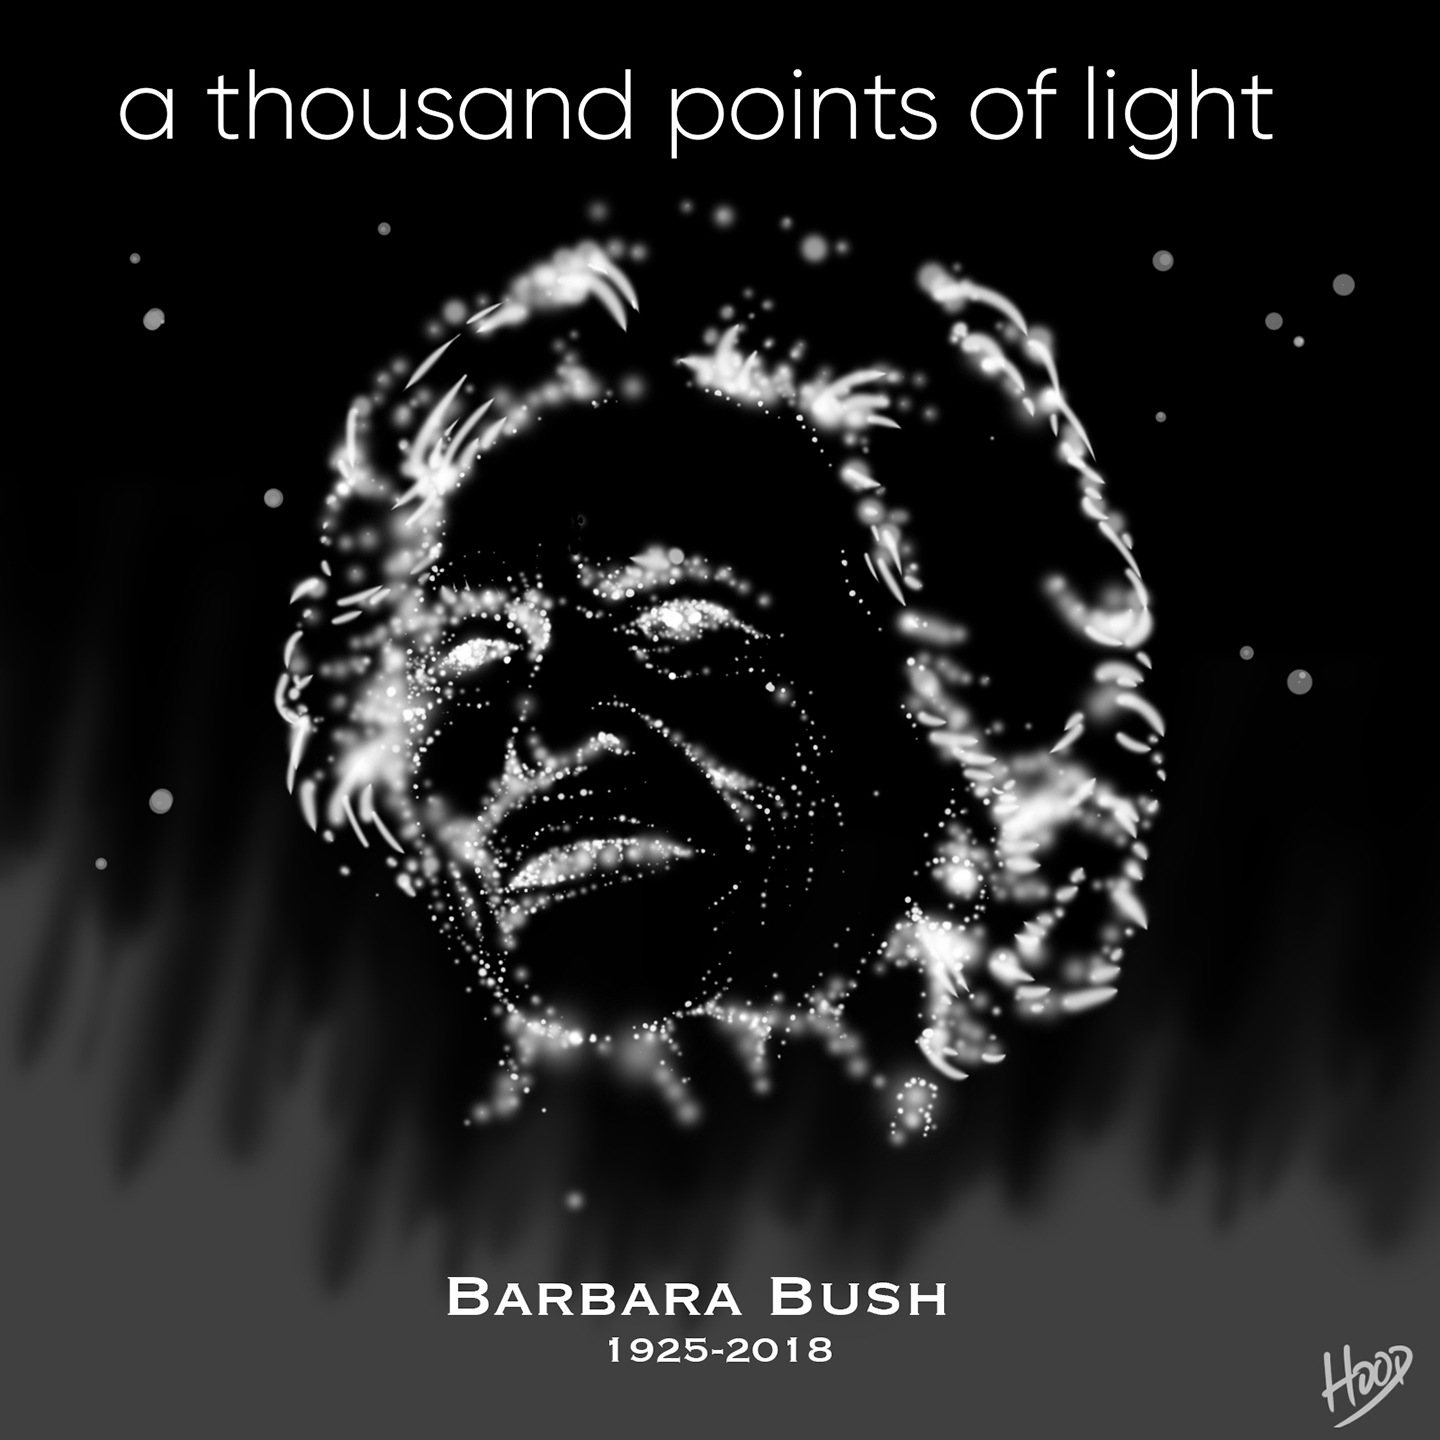 Obituary artwork for Barbara Bush